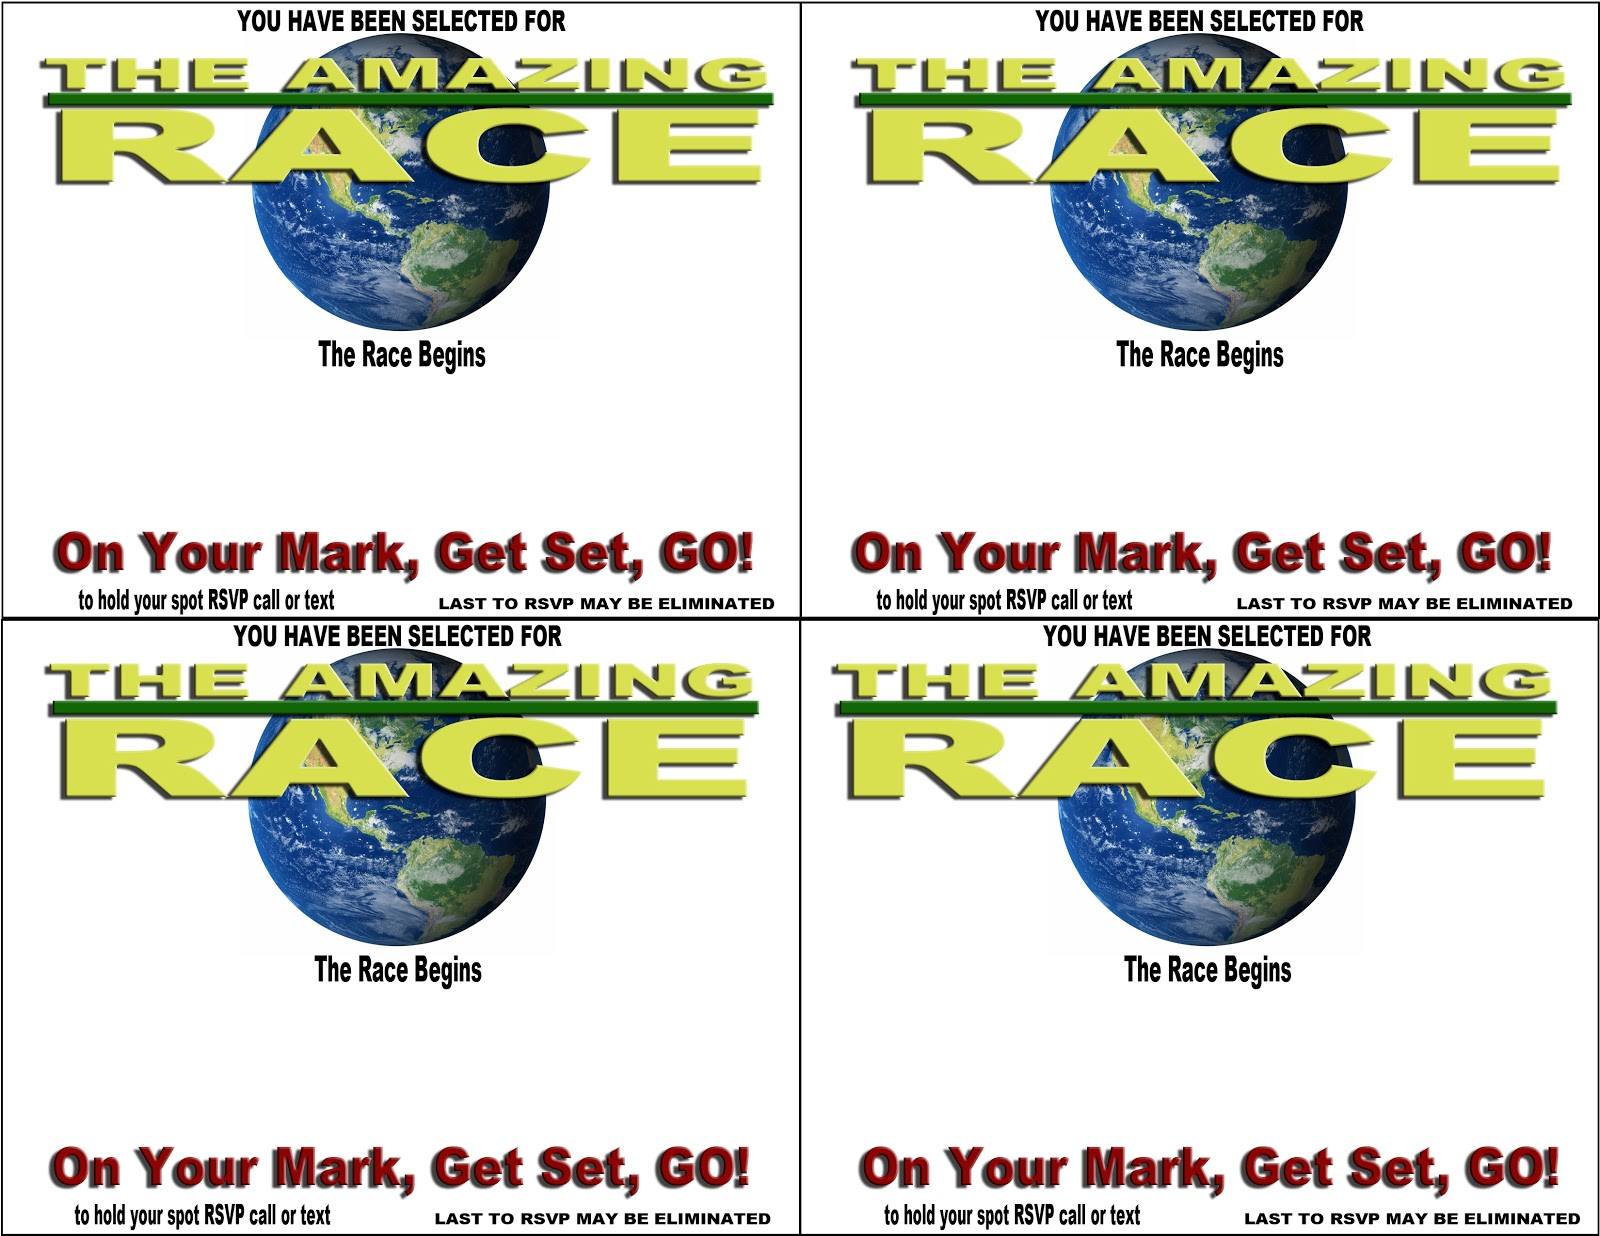 amazing race birthday party templates - amazing race party invitations party invitations ideas